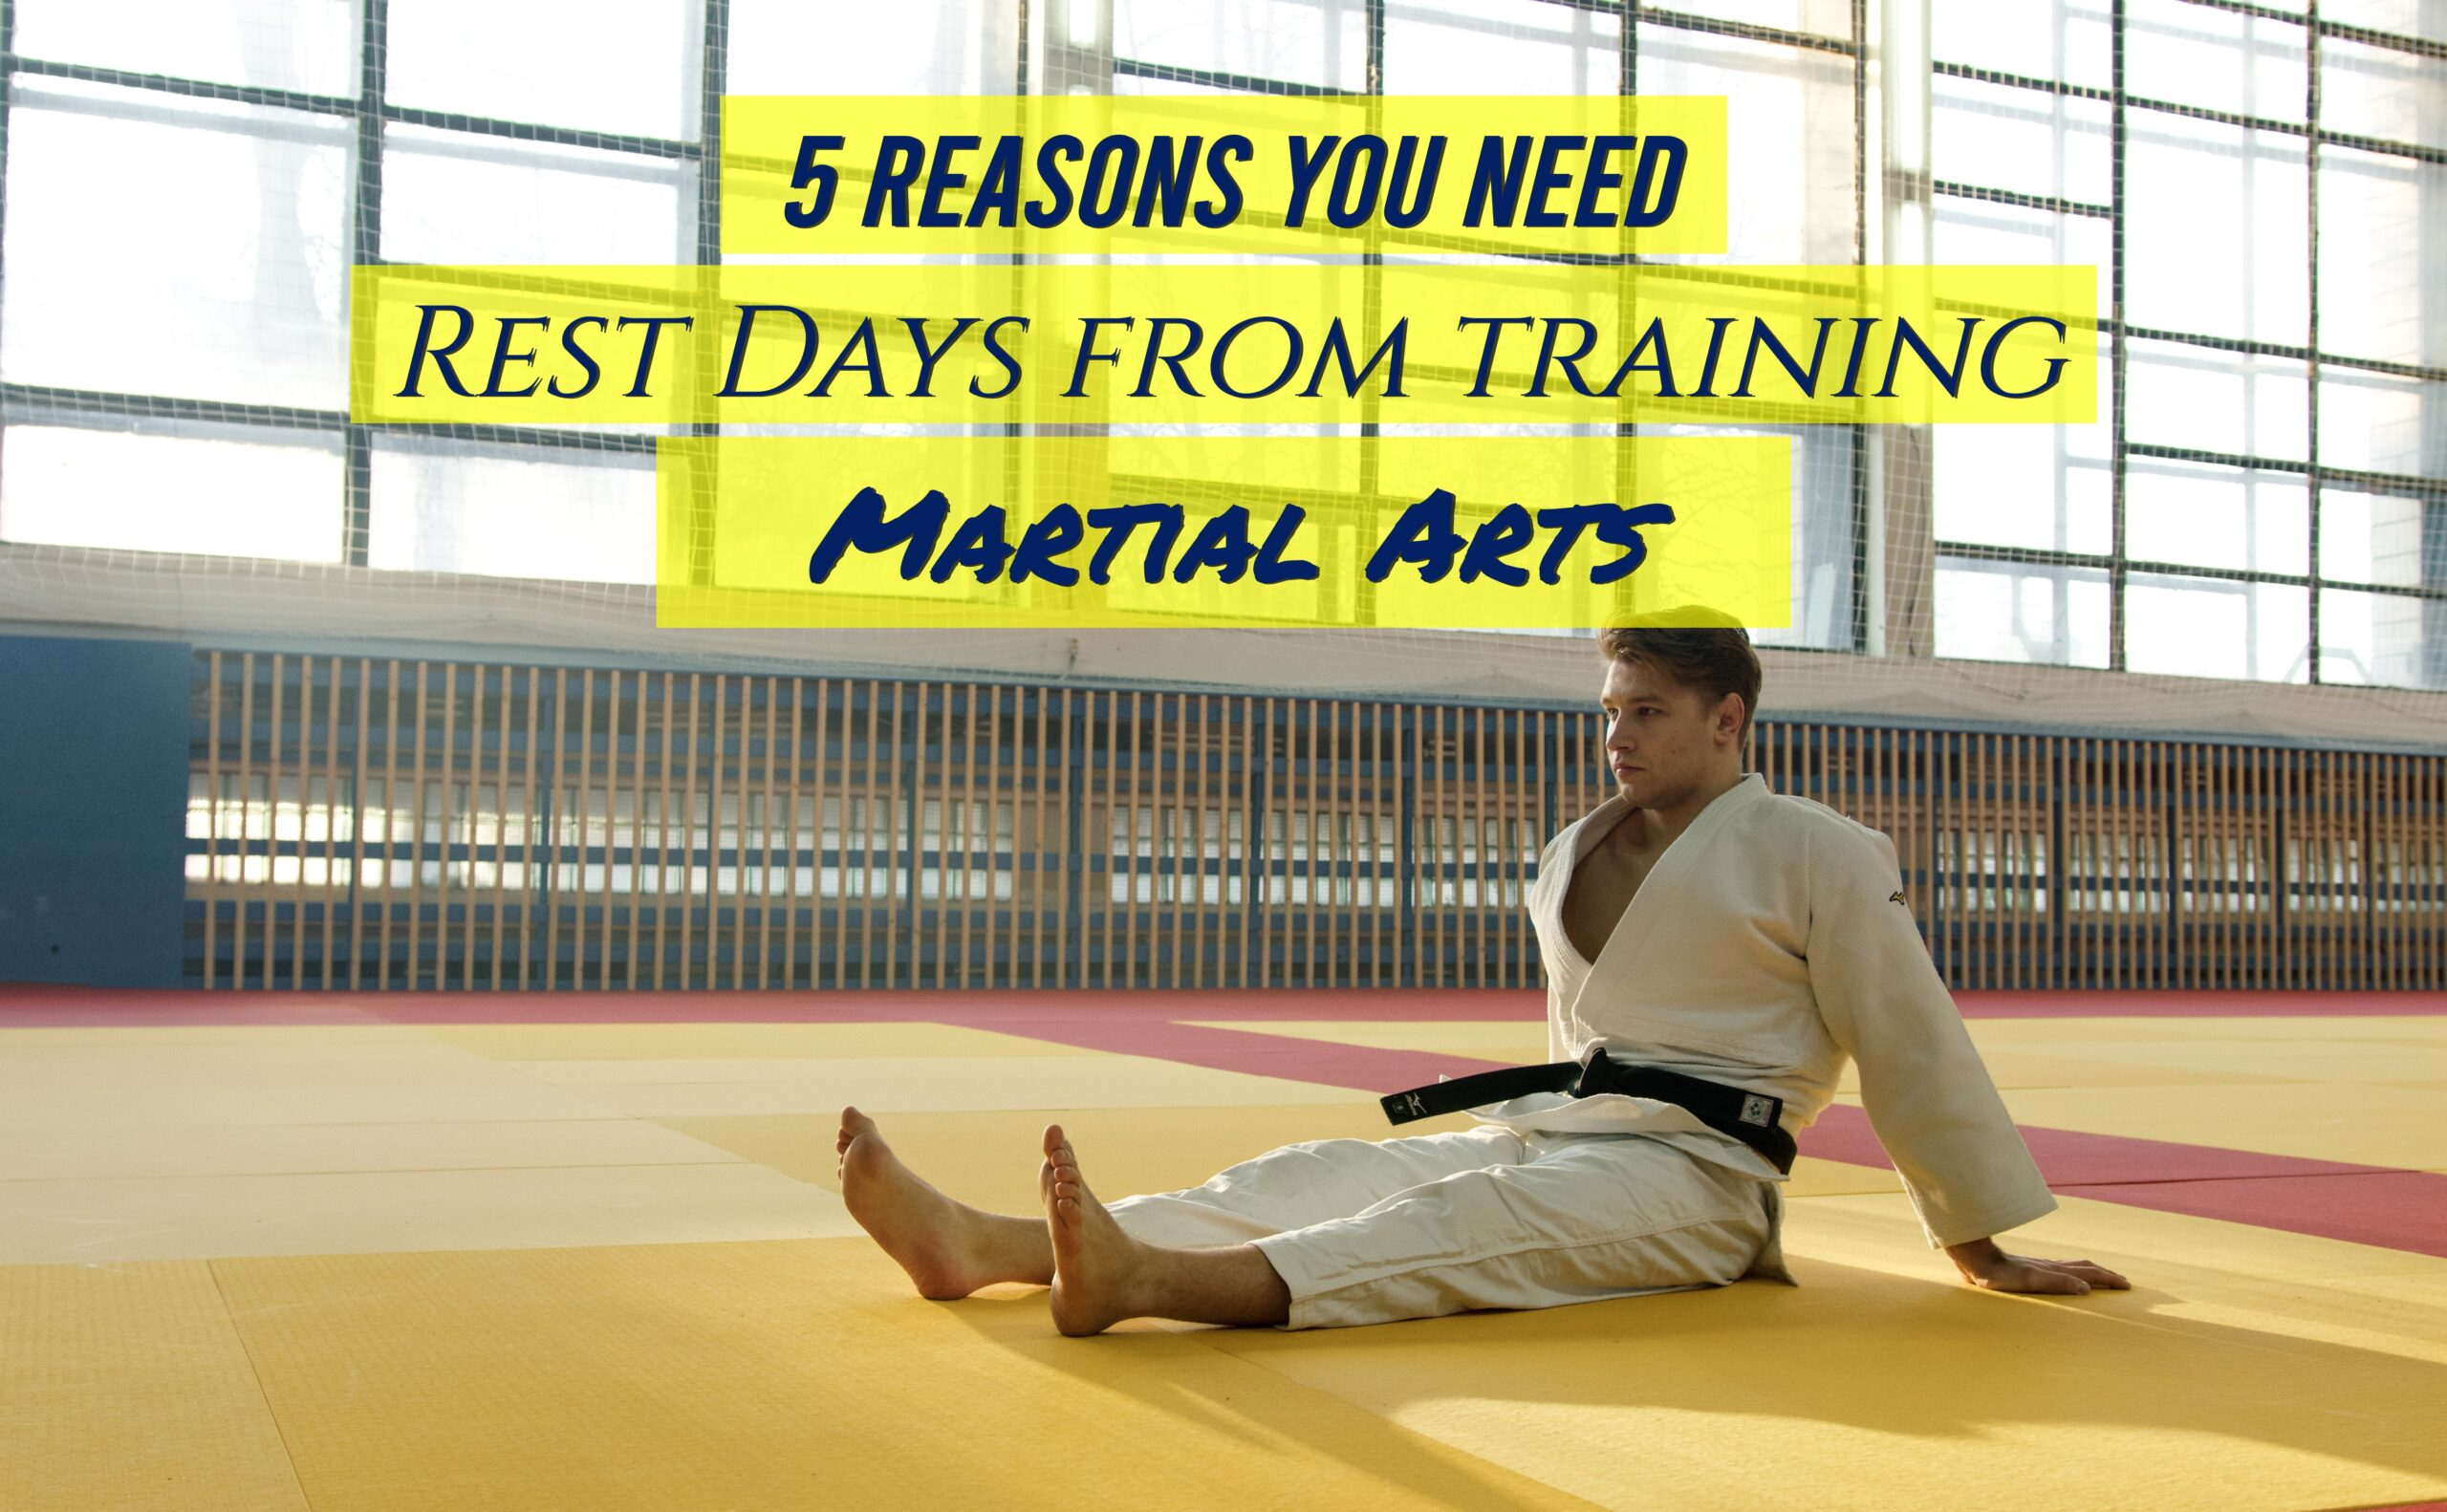 Rest Days | 5 Reasons You Need it After Training Martial Arts